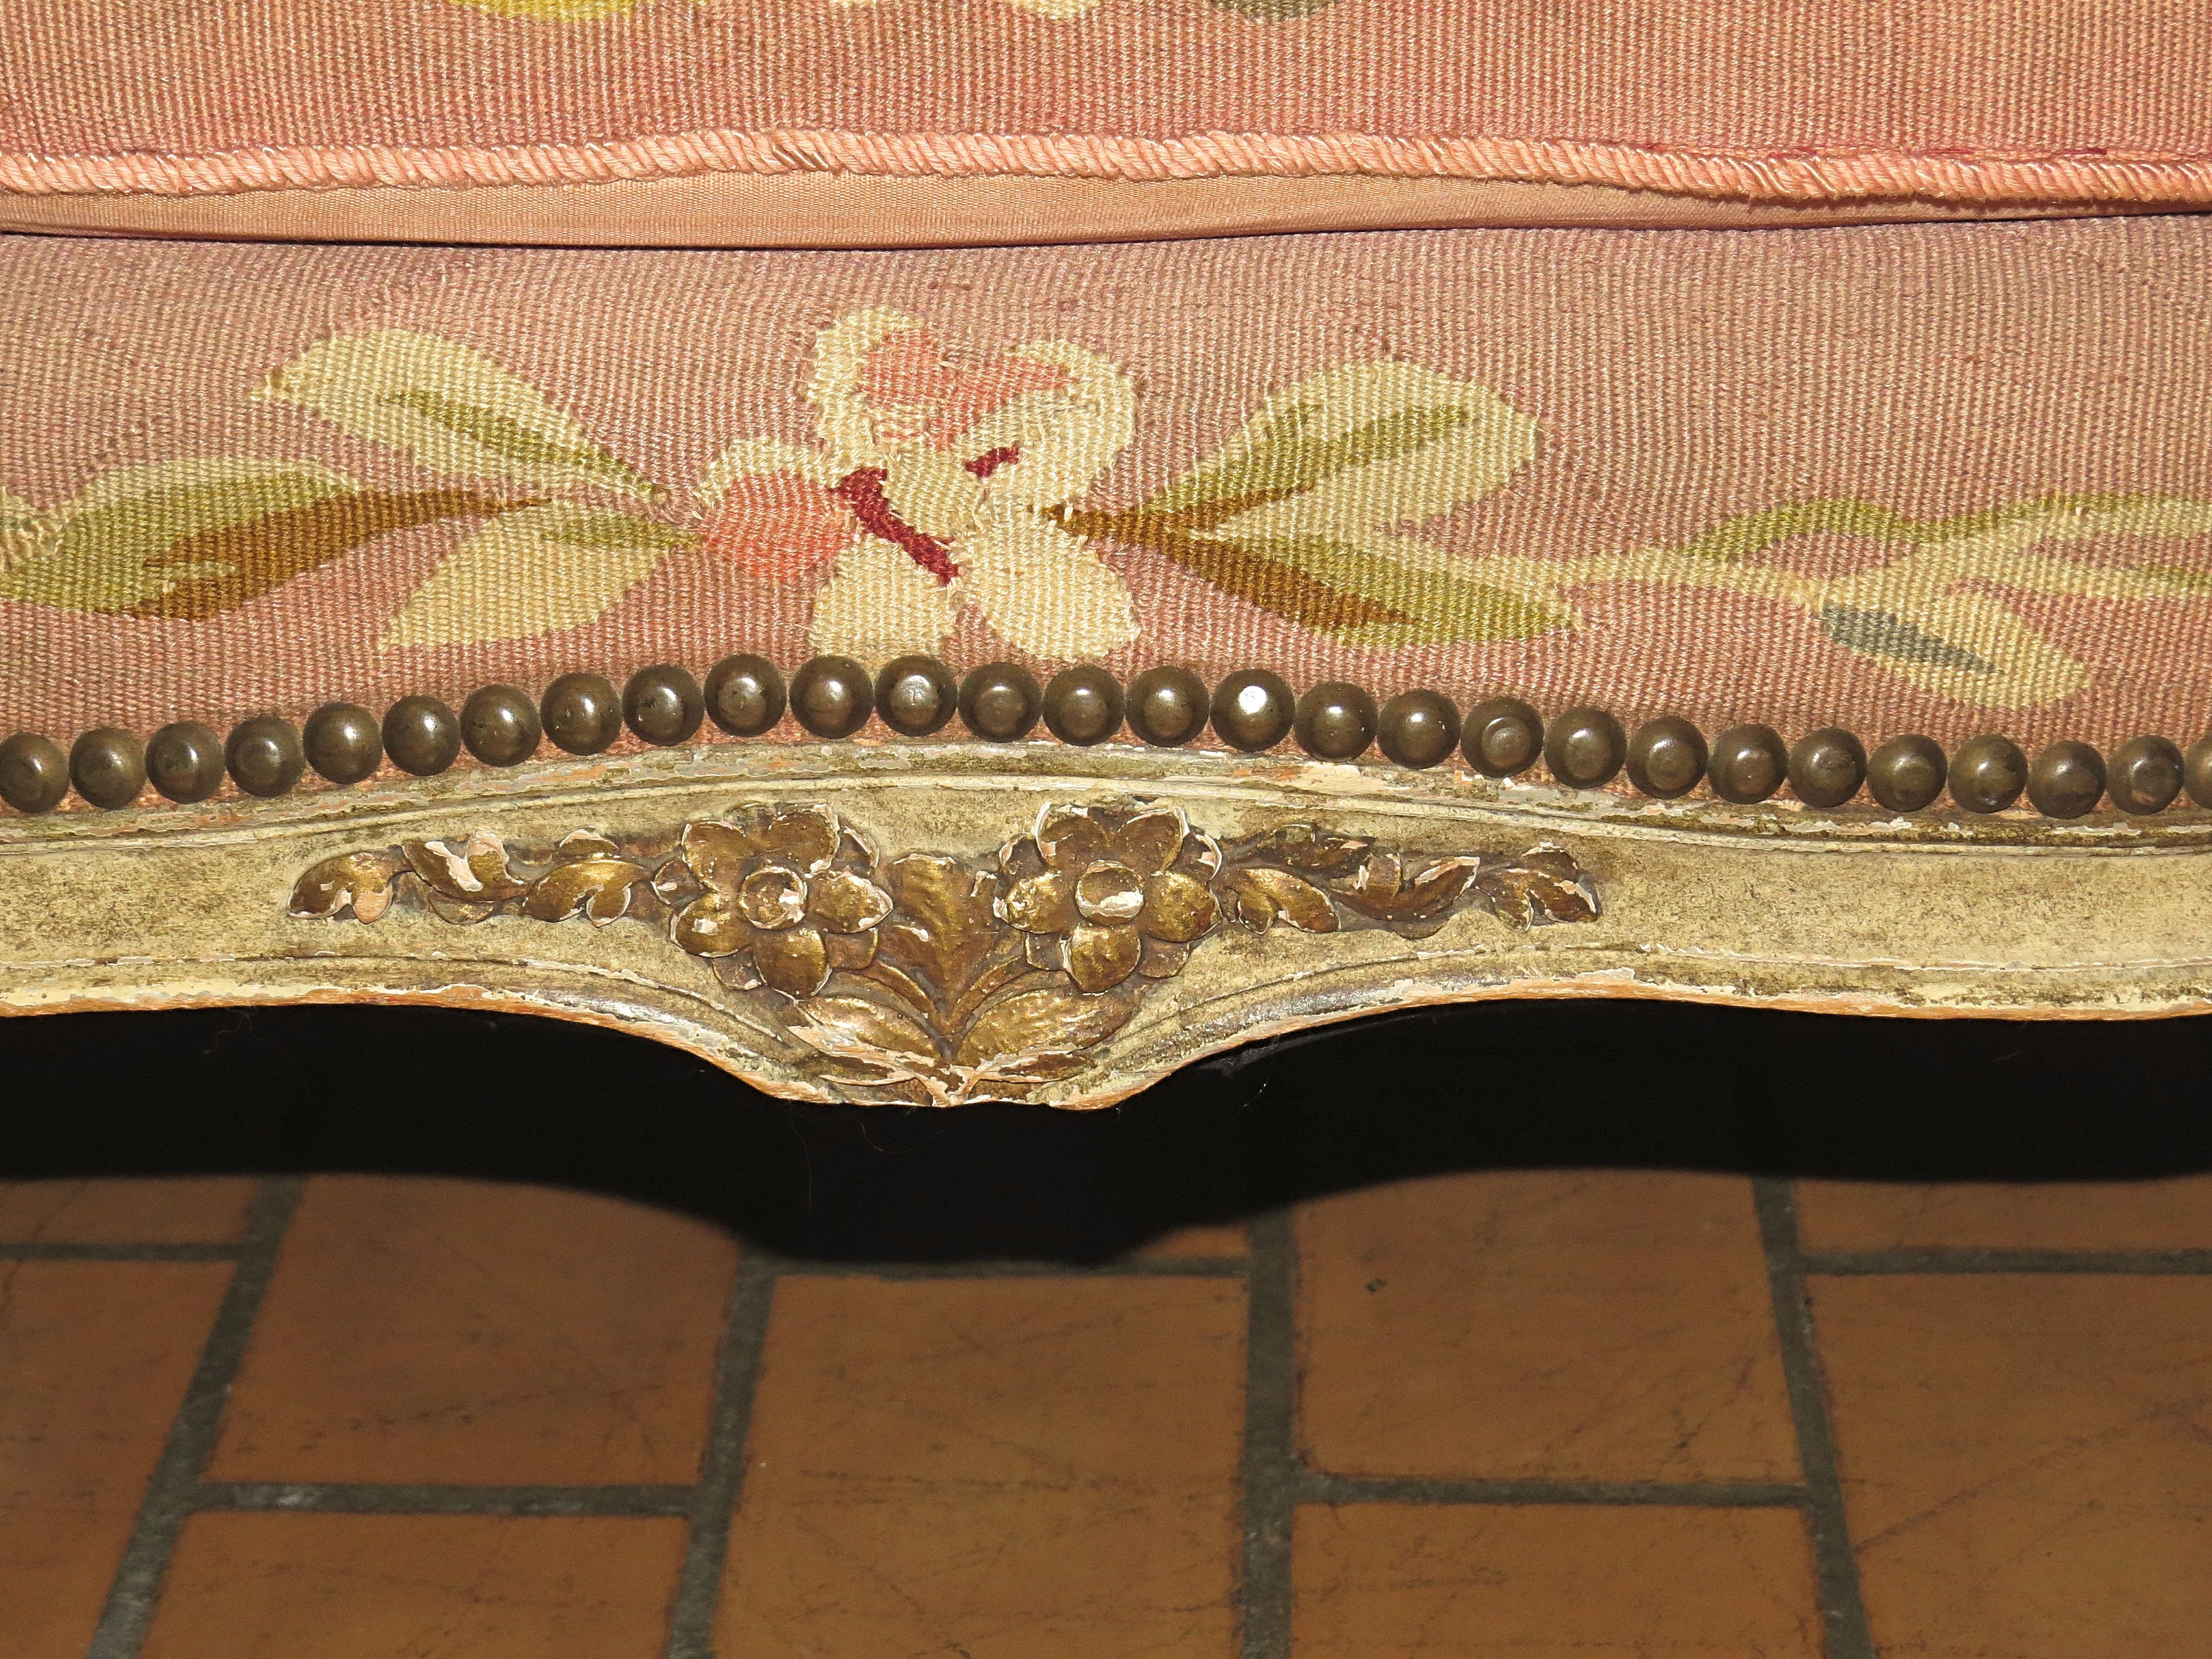 Louis XVI Style Settee with Petit-Point Needlework Upholstery